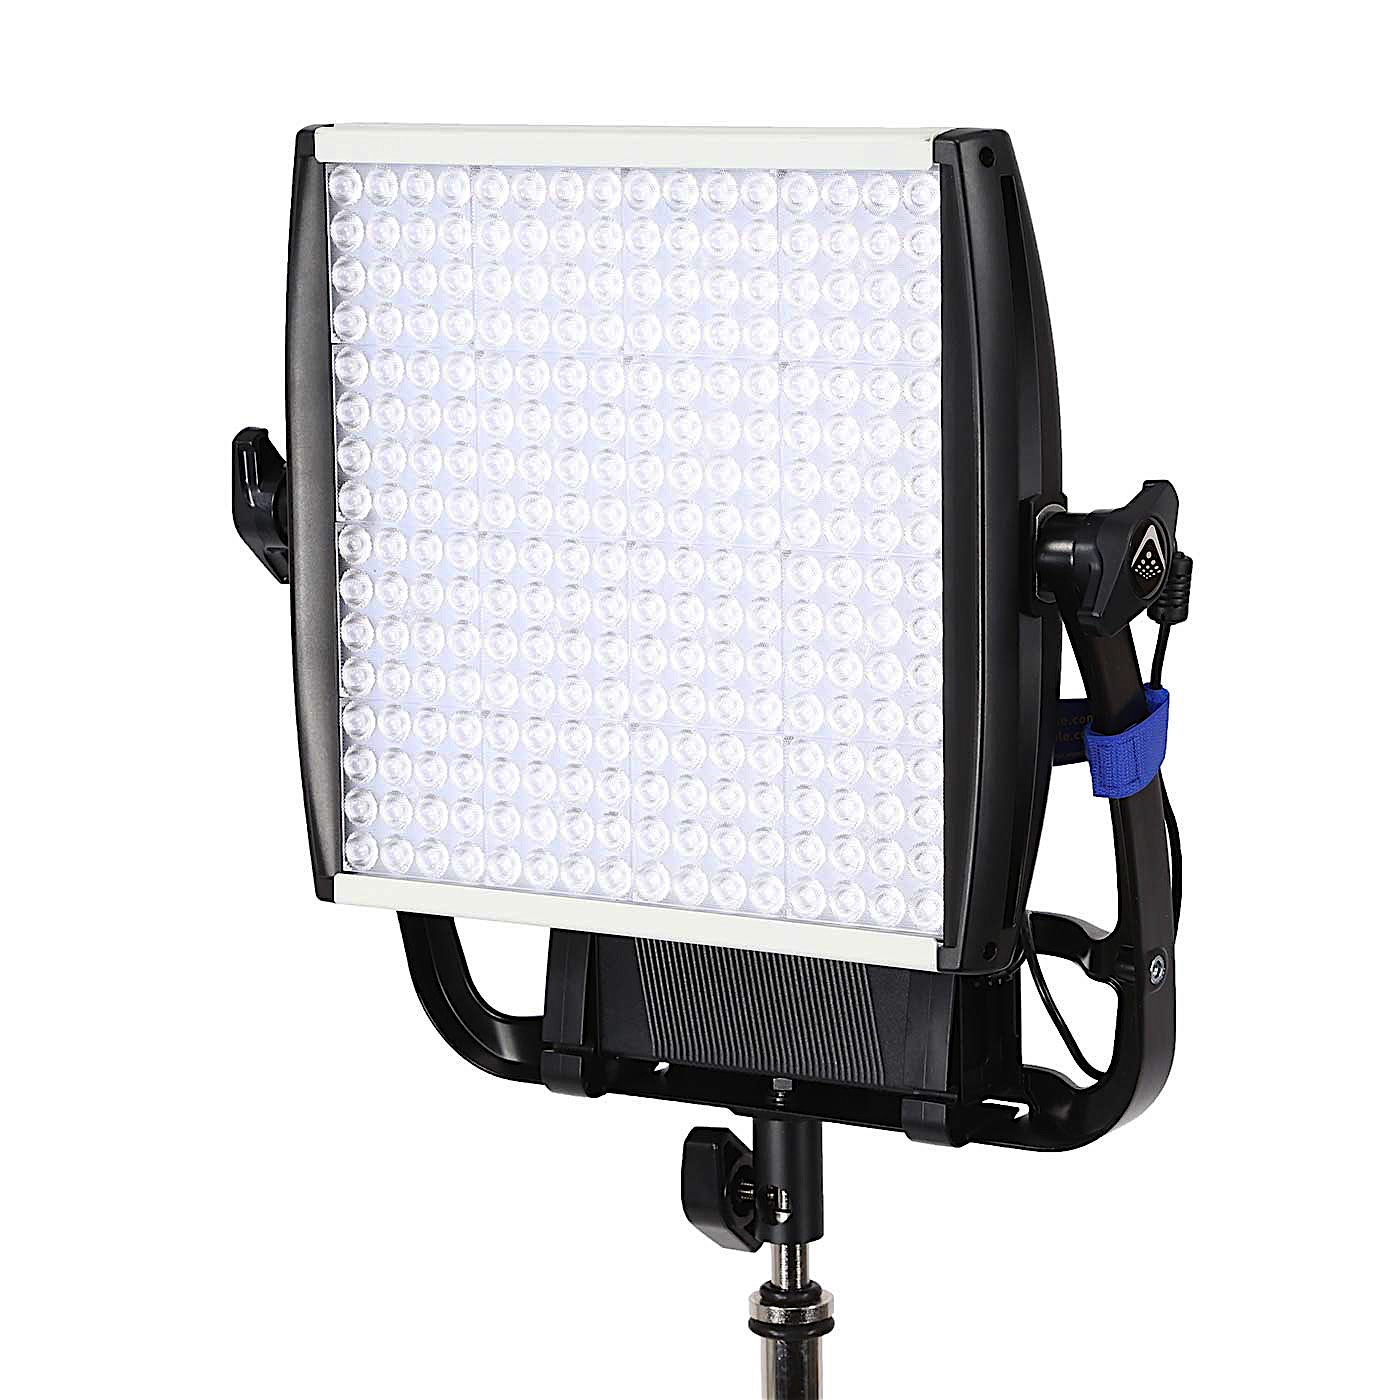 Litepanels Astra 1x1 Bi Color Flood Light